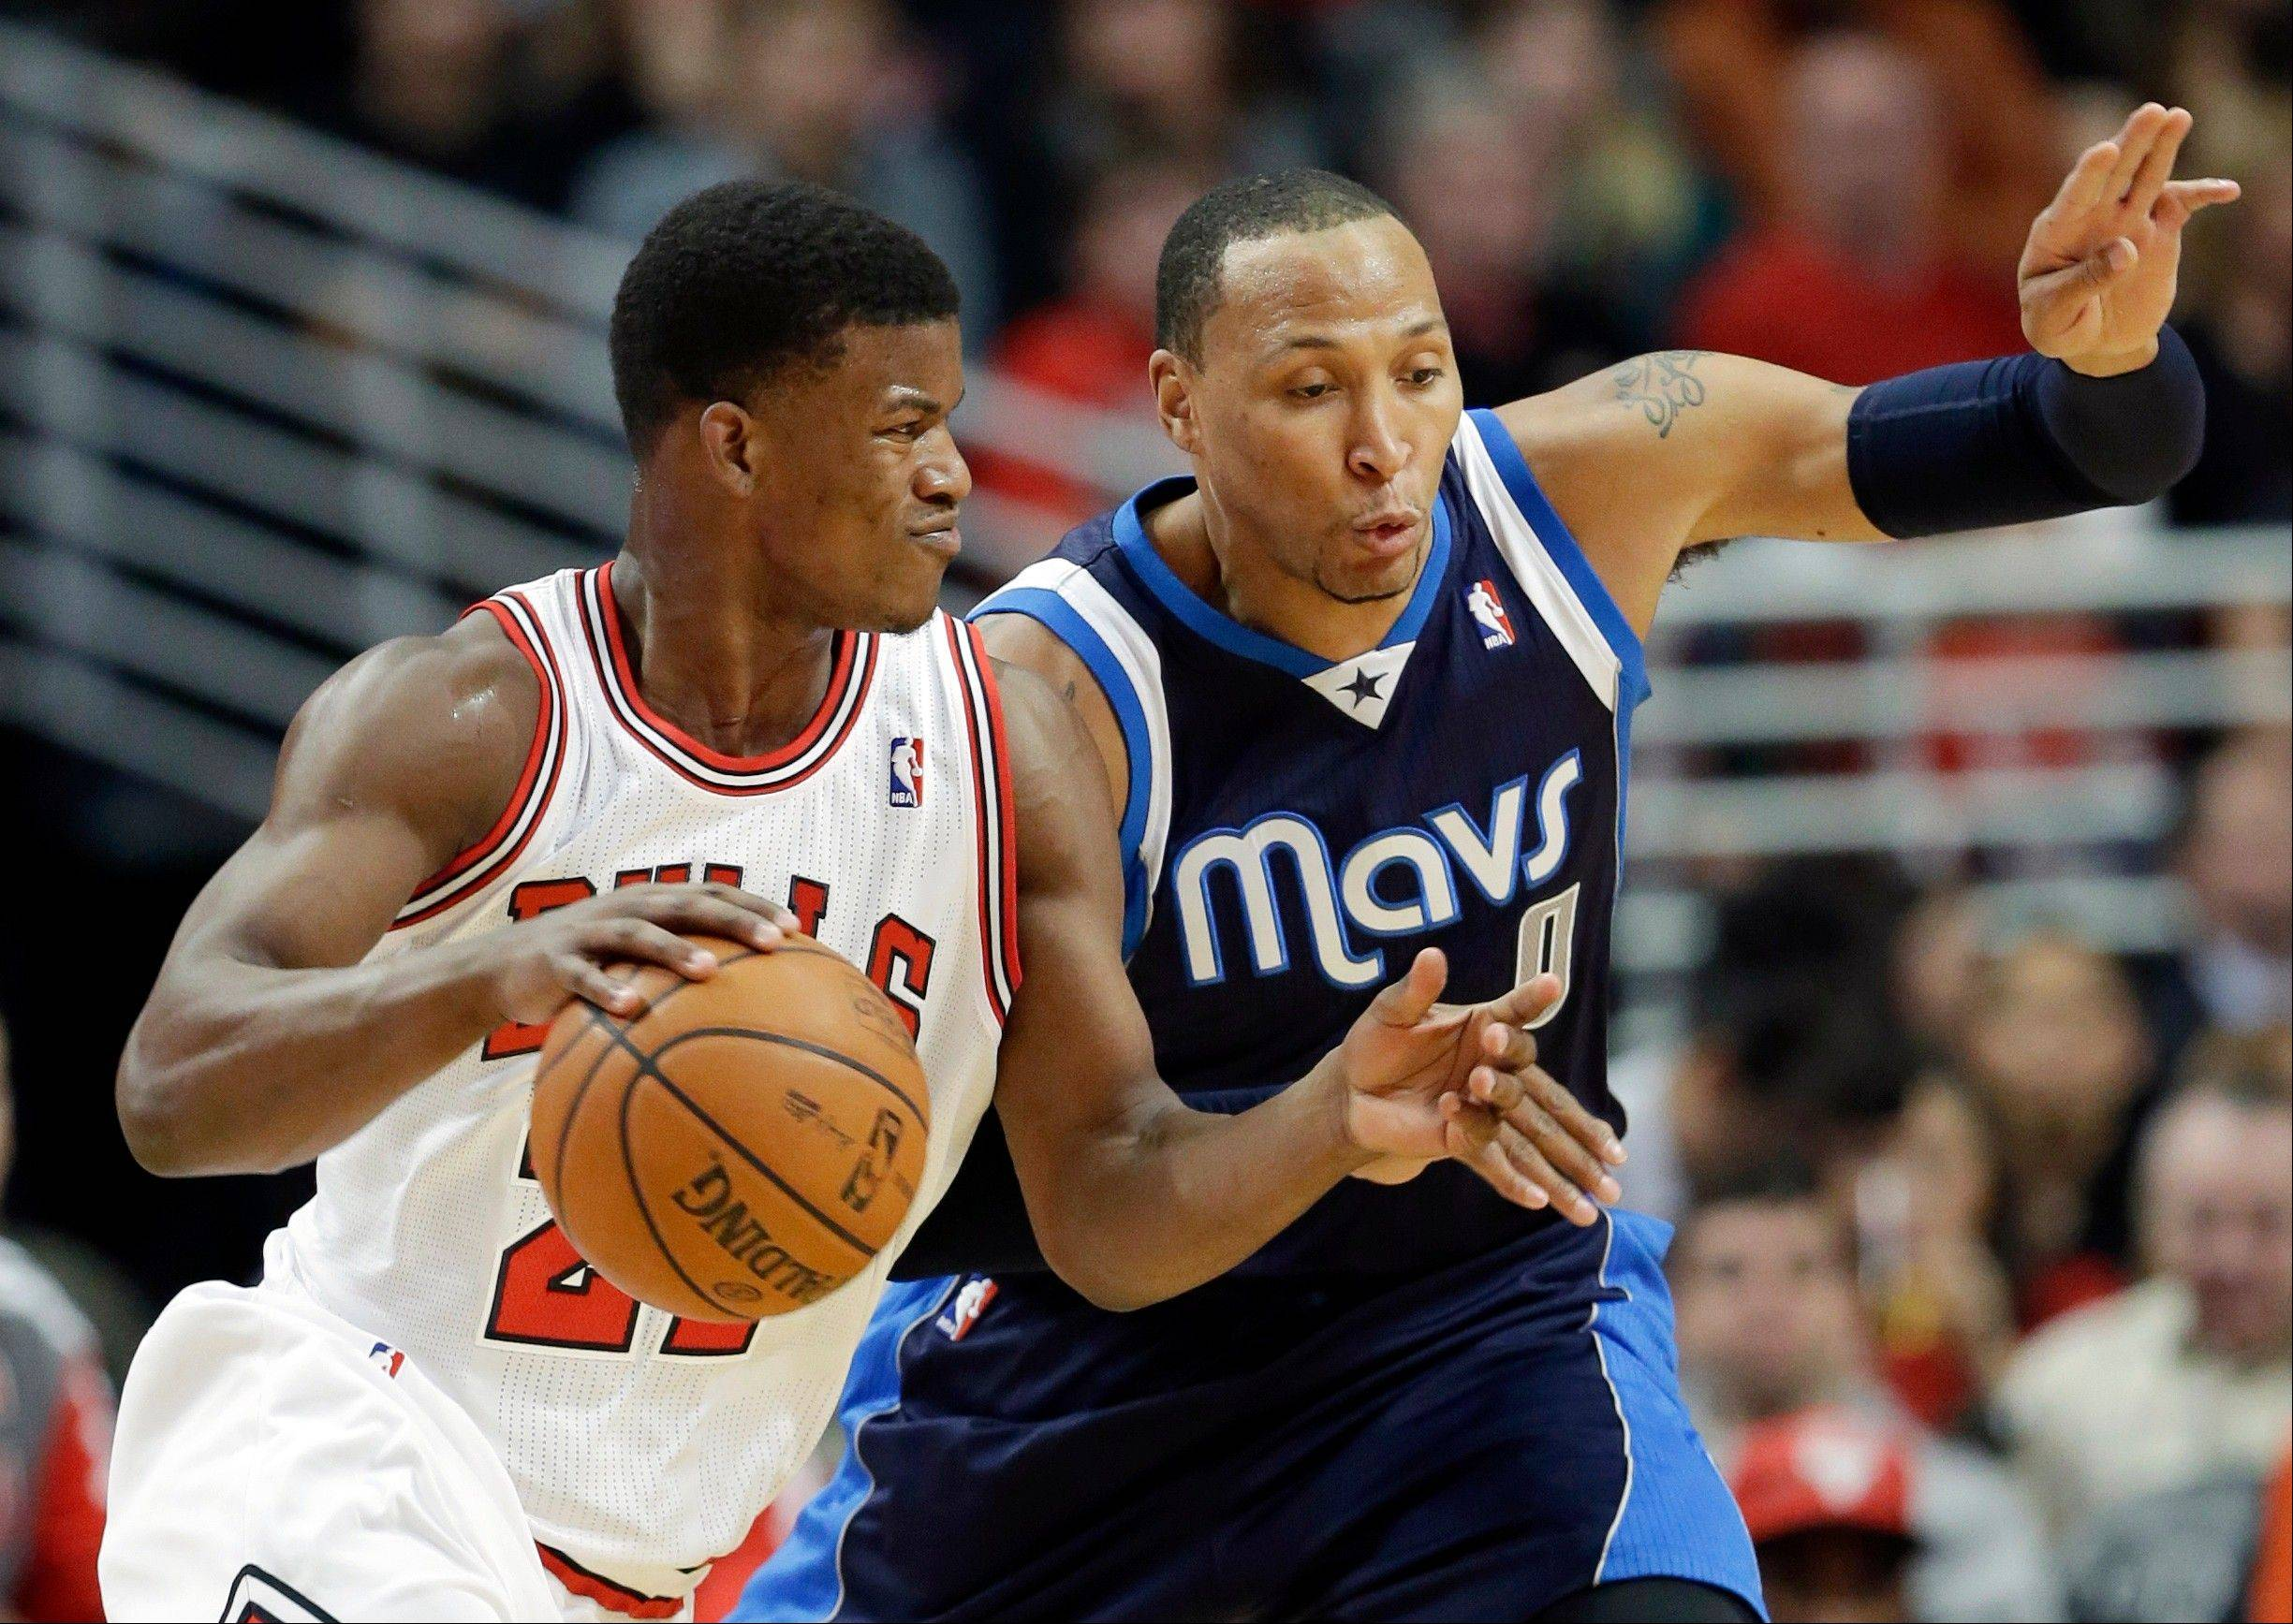 Bulls guard Jimmy Butler drives against Mavericks forward Shawn Marion on Saturday. Butler aggravated a turf toe injury in the loss but says he�ll be ready to play Monday in Memphis.